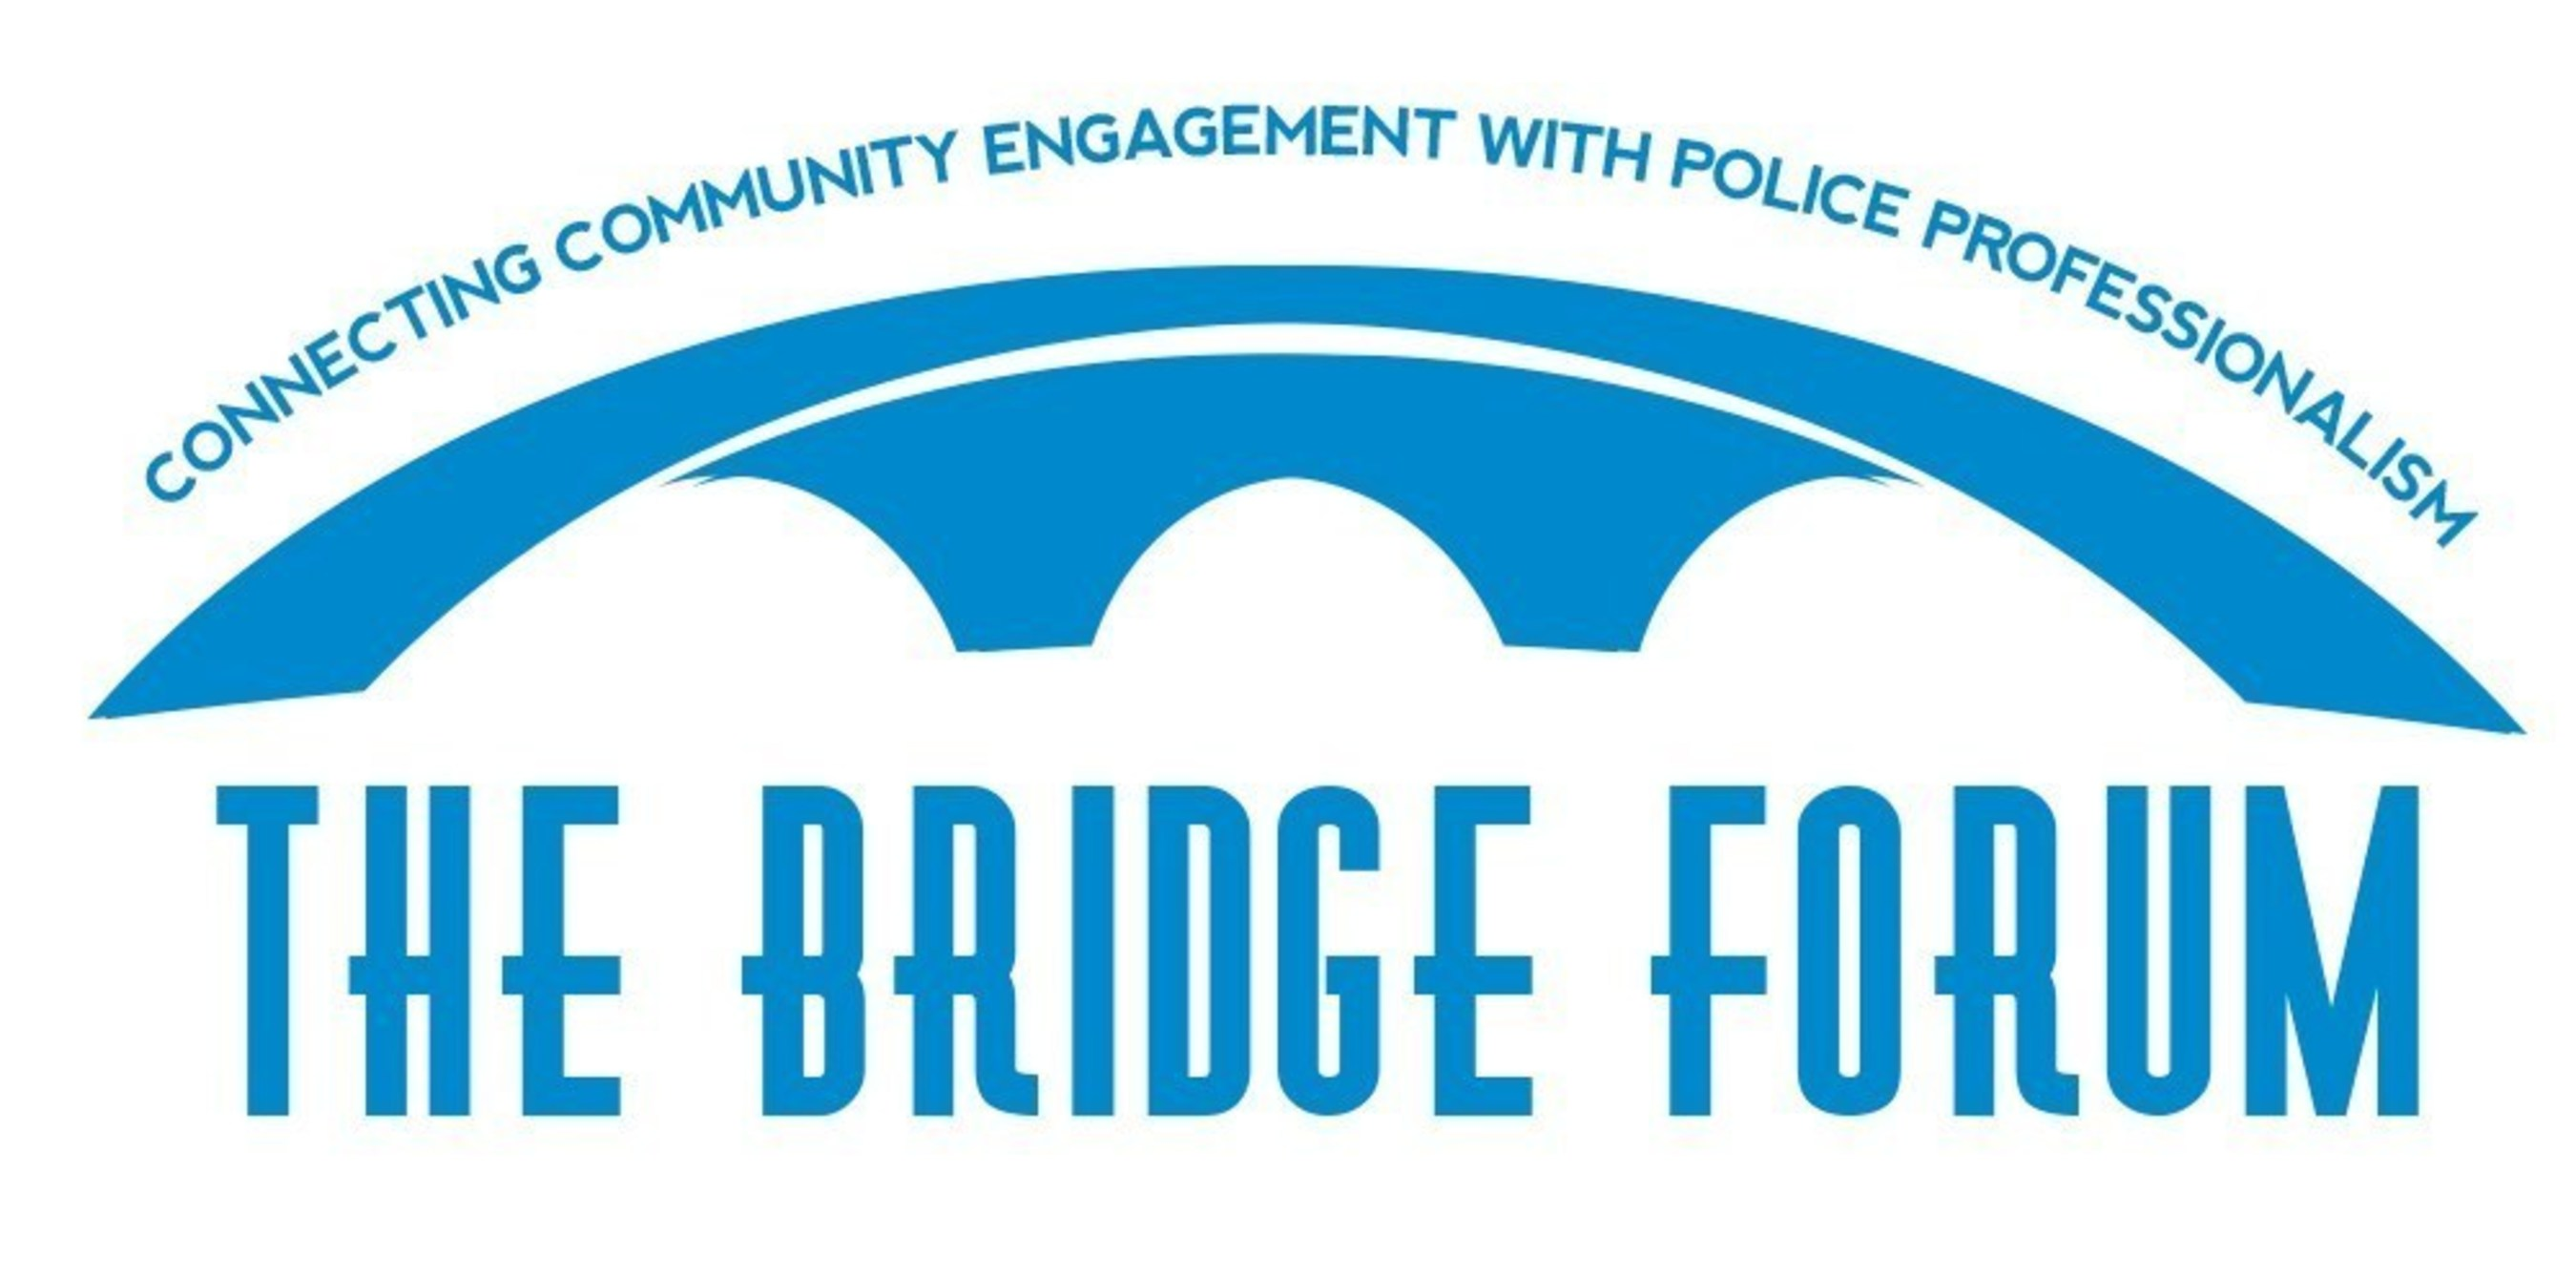 The Bridge Forum http://www.thebridgeforum.com/, a model solutions-driven daylong program, comes to Louisville, KY, Oct. 28, for national dialogue with police chiefs and law enforcement from across the country and community members and leaders to solve inner-city challenges.